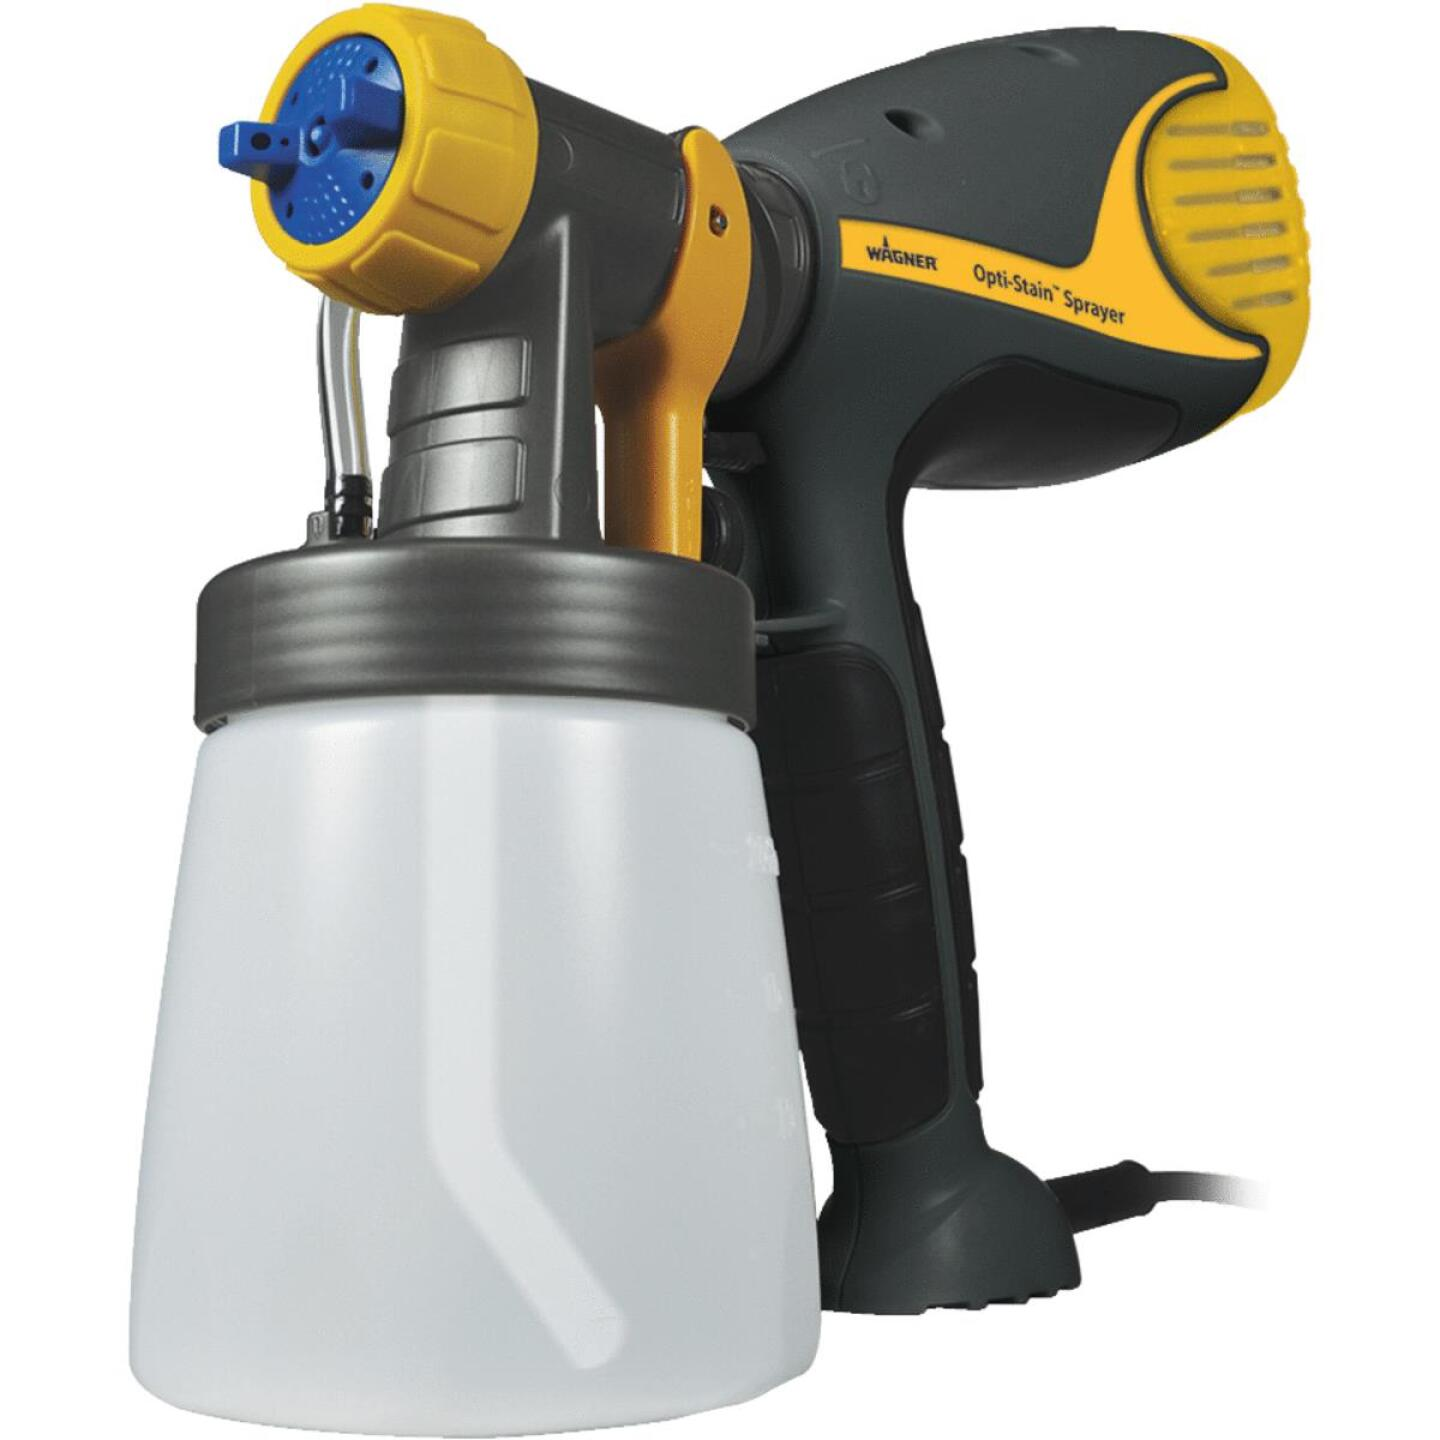 Wagner Opti-Stain Paint Sprayer Image 1